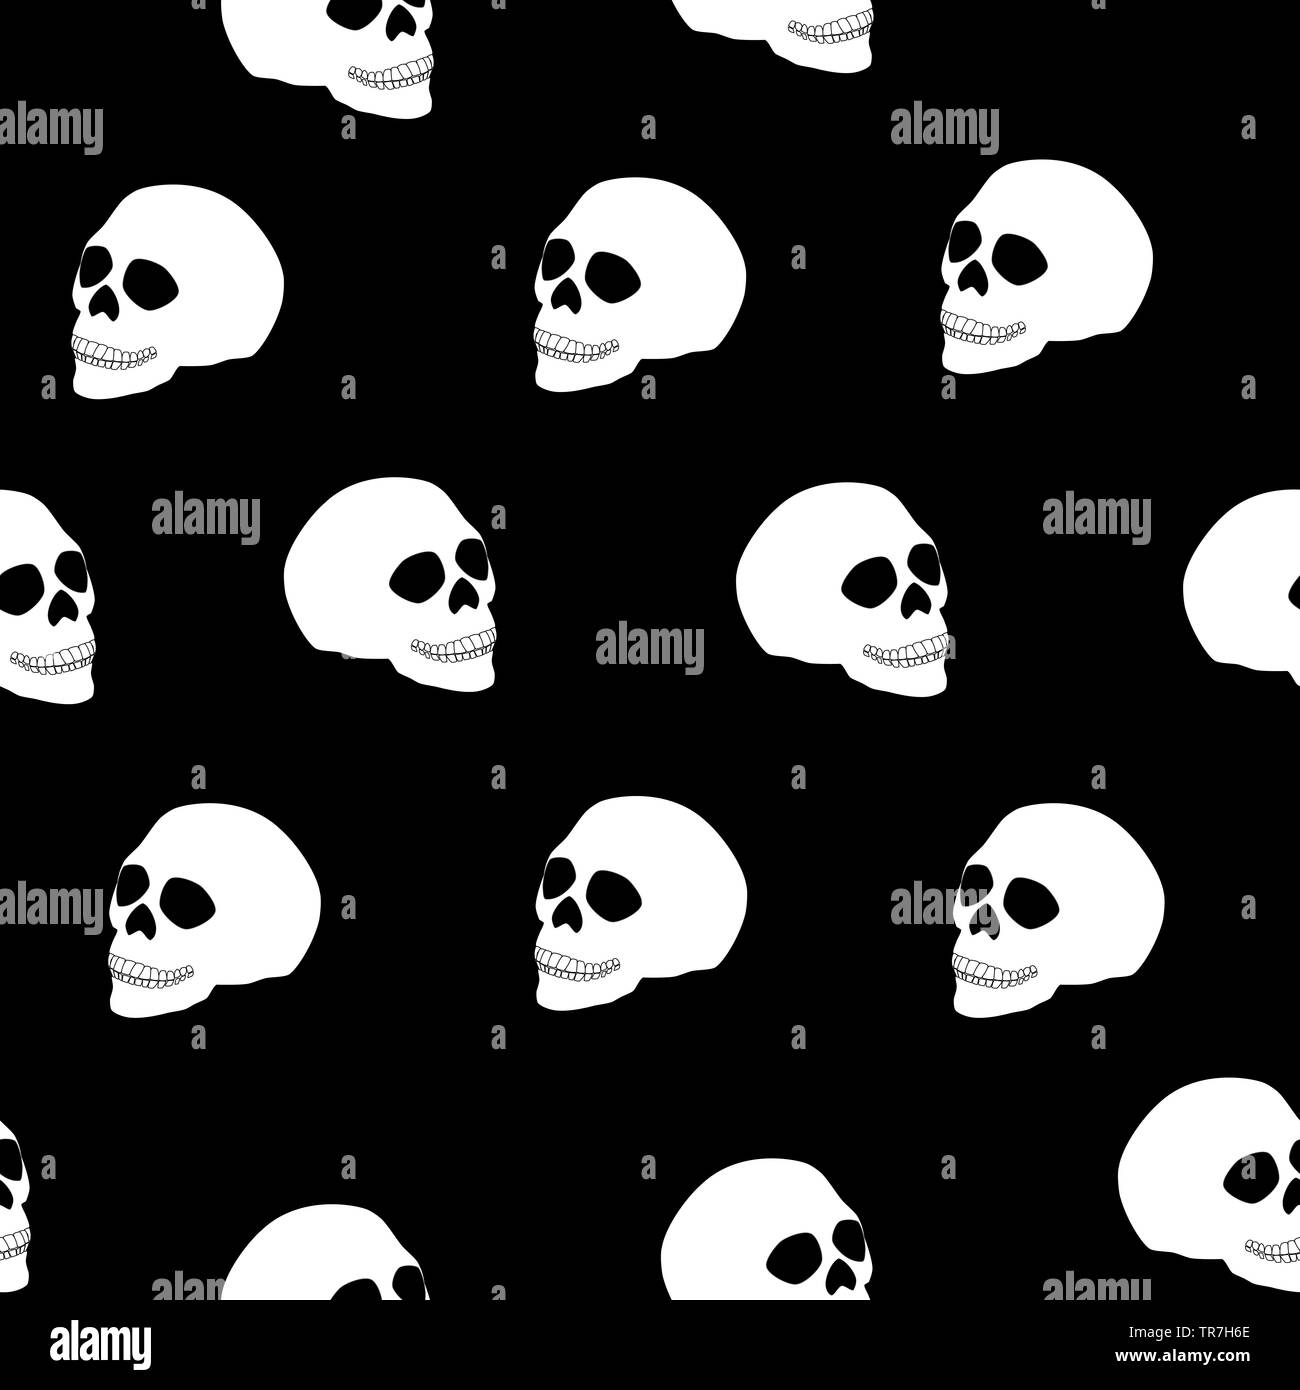 Seamless Pattern White Human Skull On Black Background